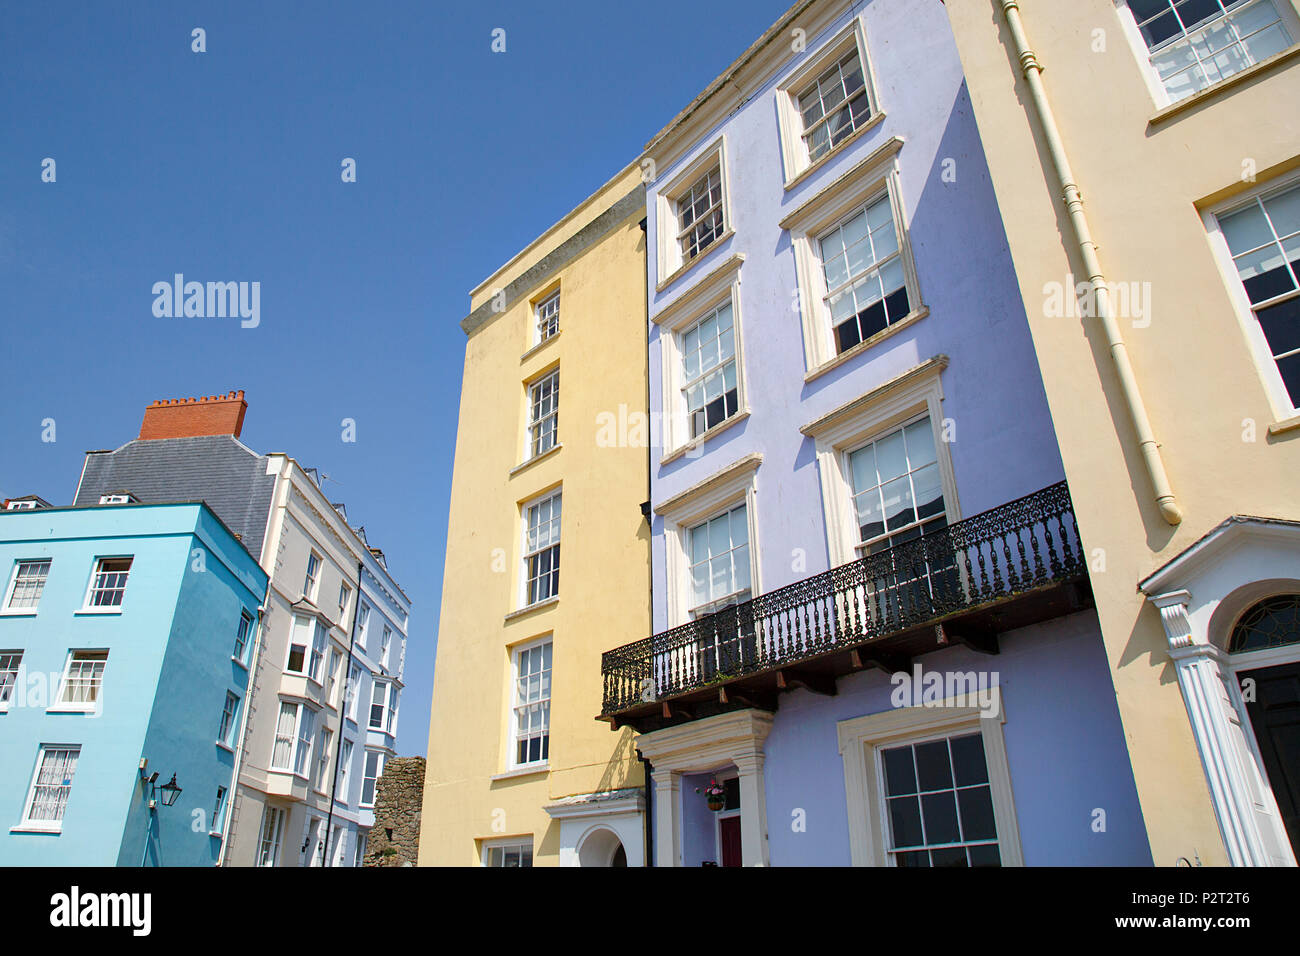 Tenby, UK: June 10, 2018: Tenby is a harbour town and resort in southwest Wales known for its beautifully painted Georgian style houses and hotels. - Stock Image